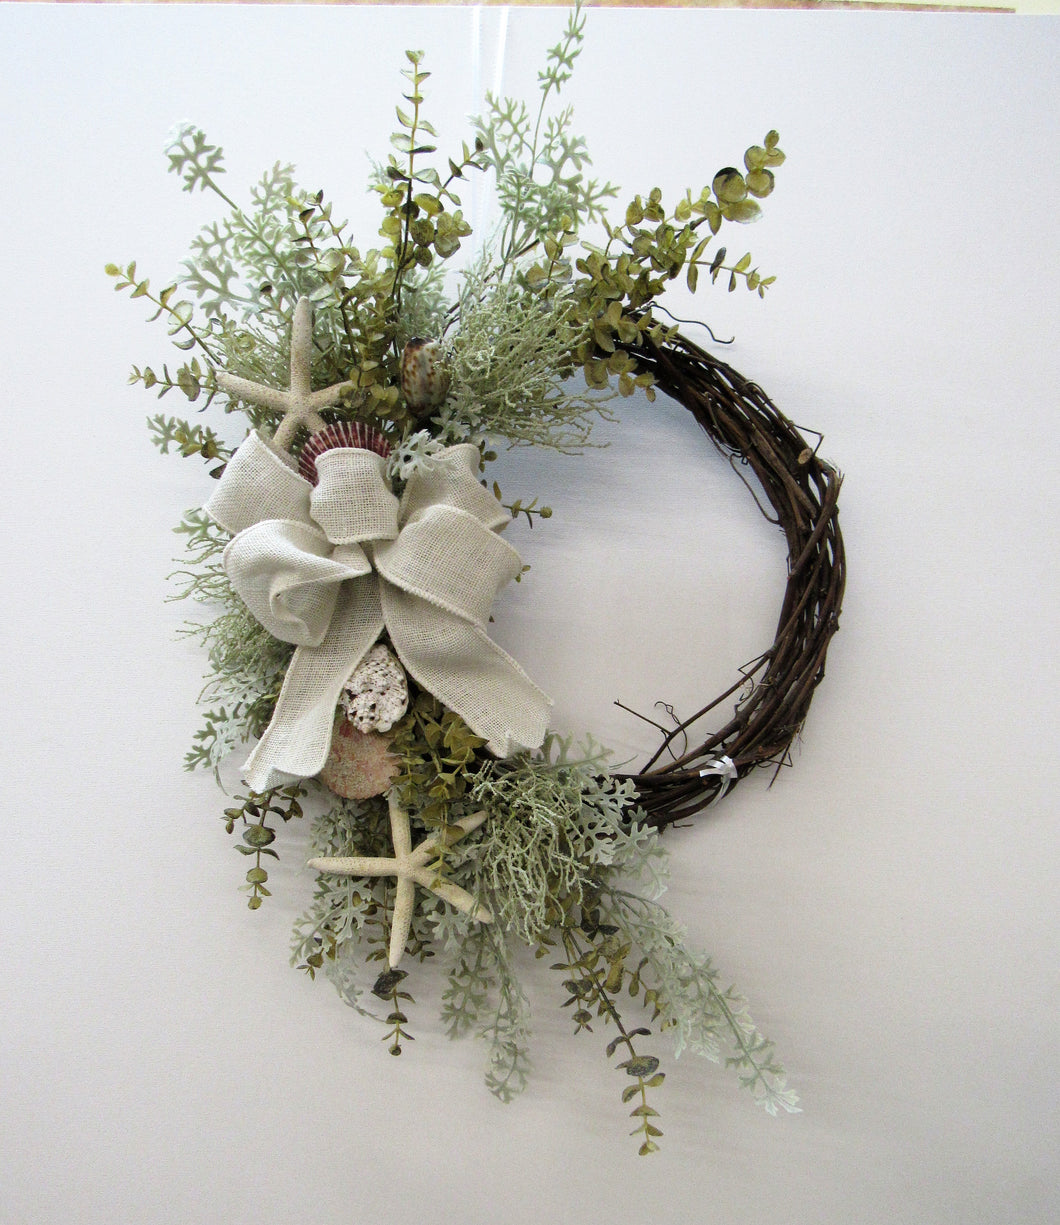 Gallery/AV16 - April's Garden Wreath